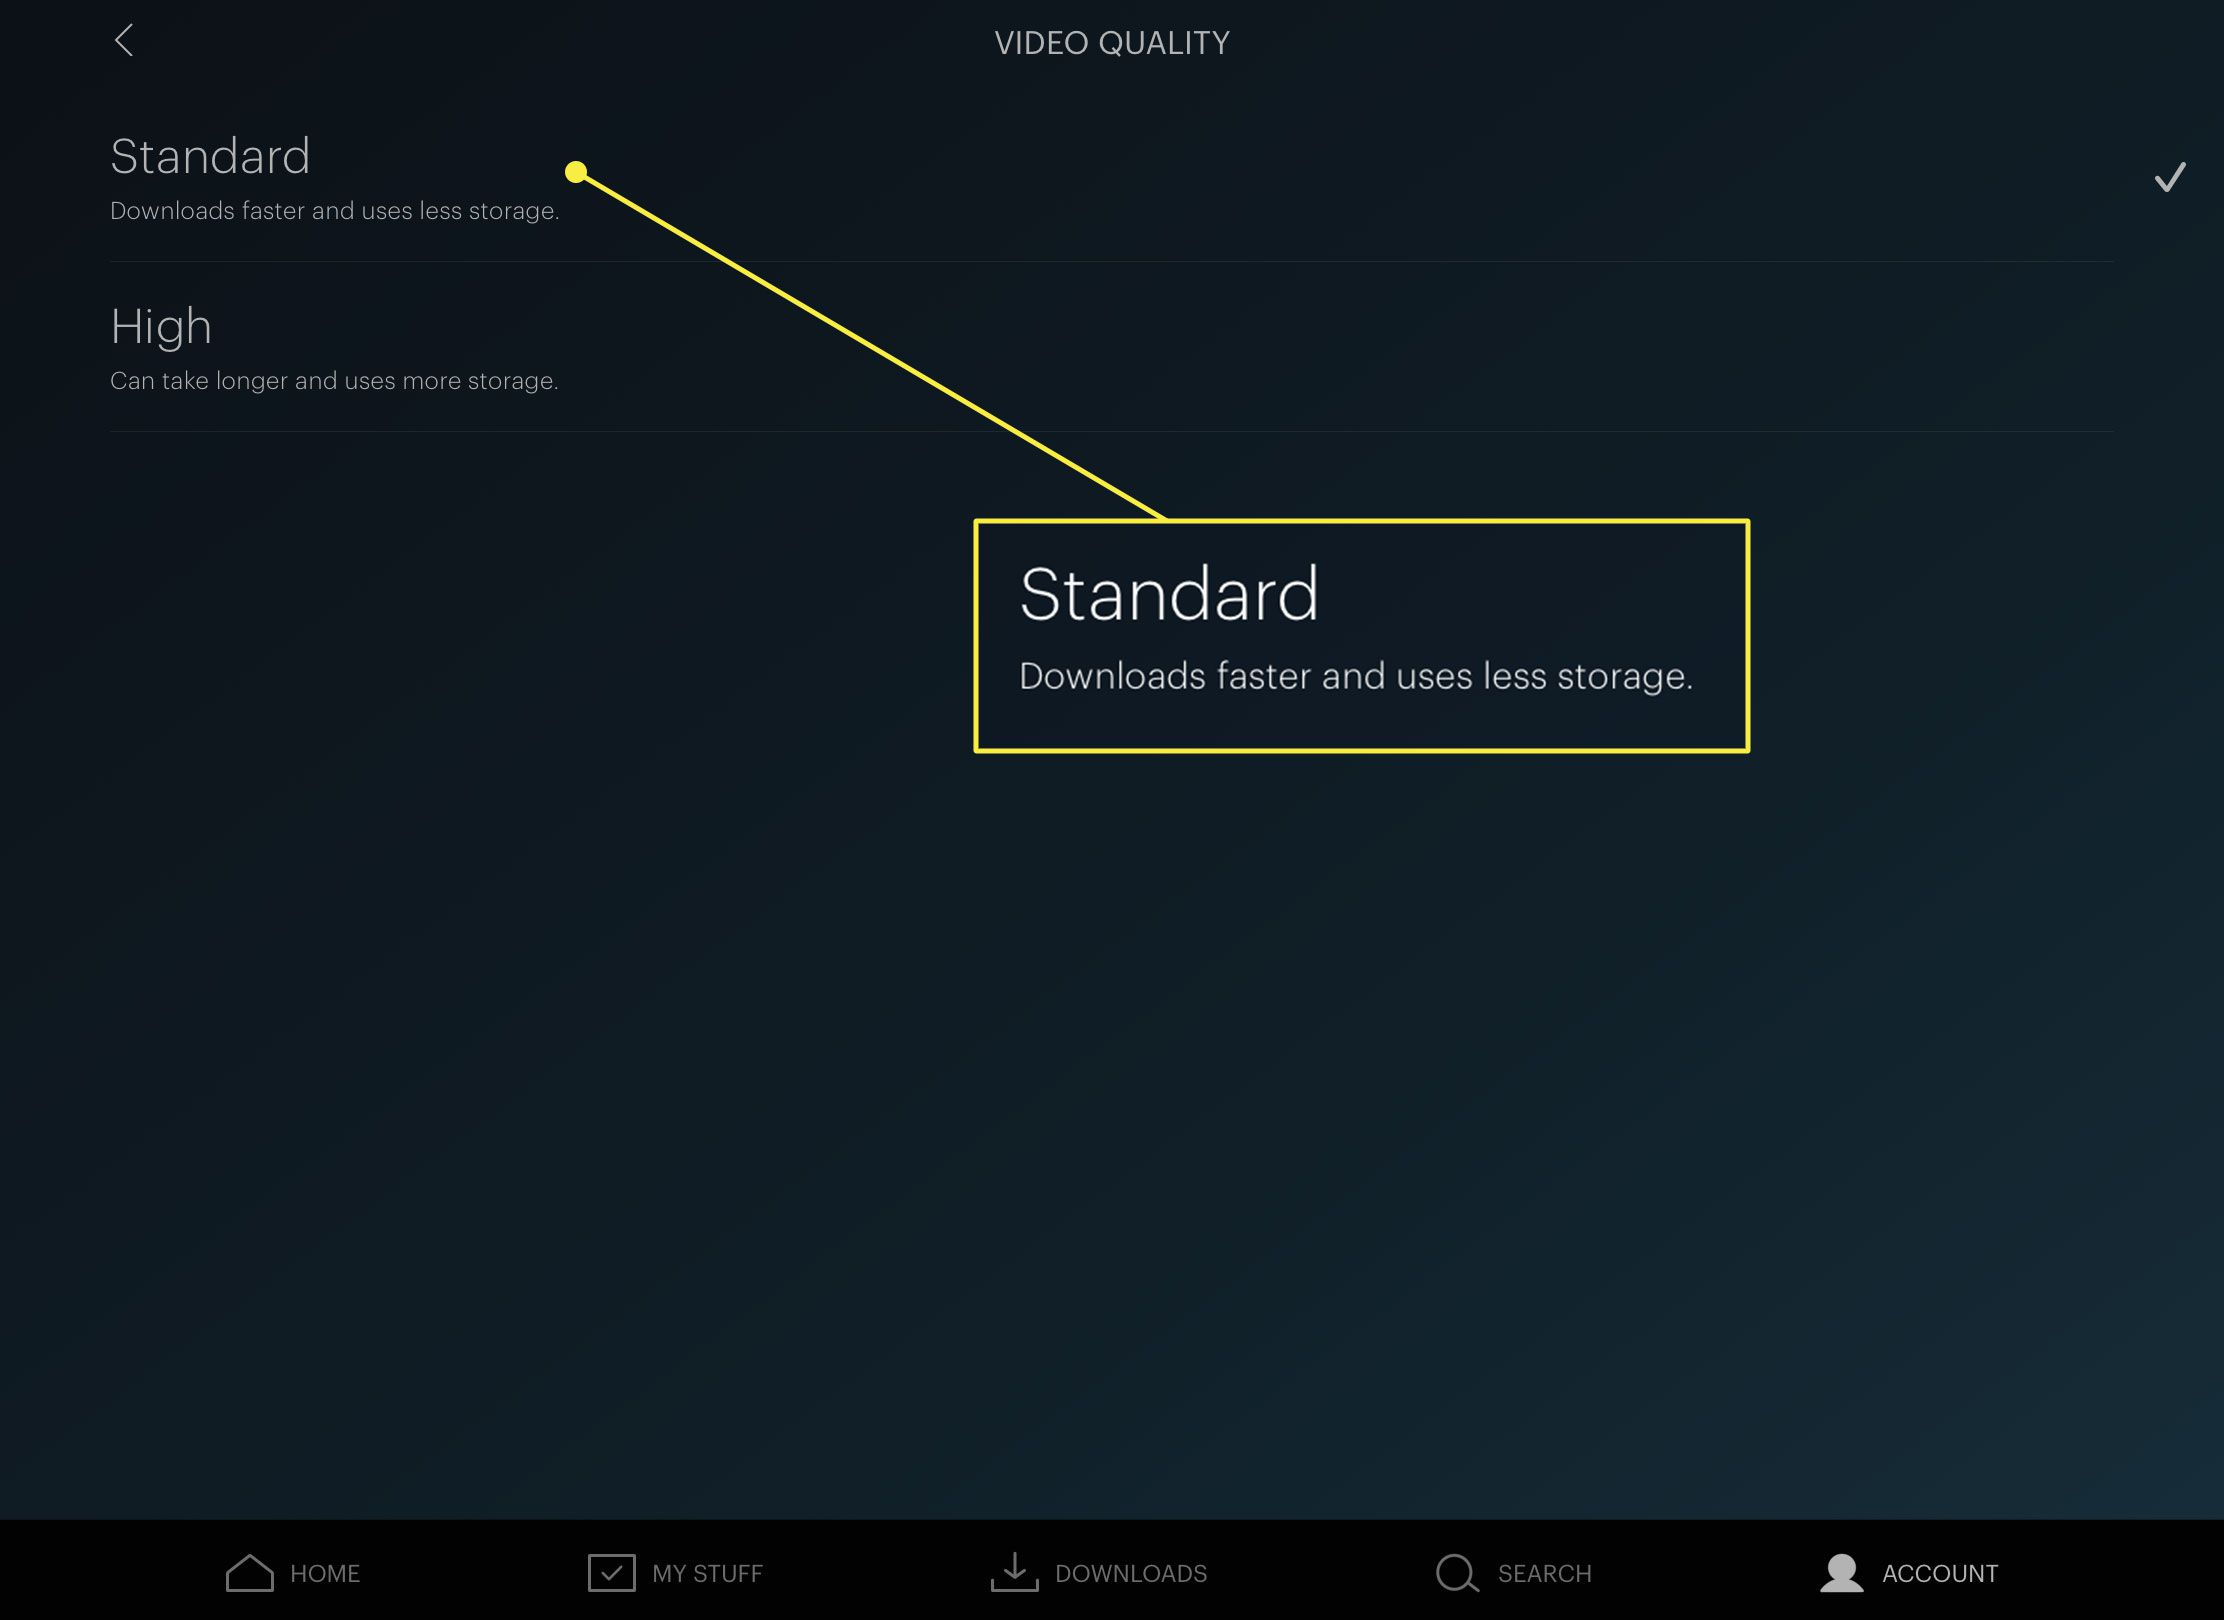 A screenshot of Hulu's Video Quality screen with the Standard option highlighted